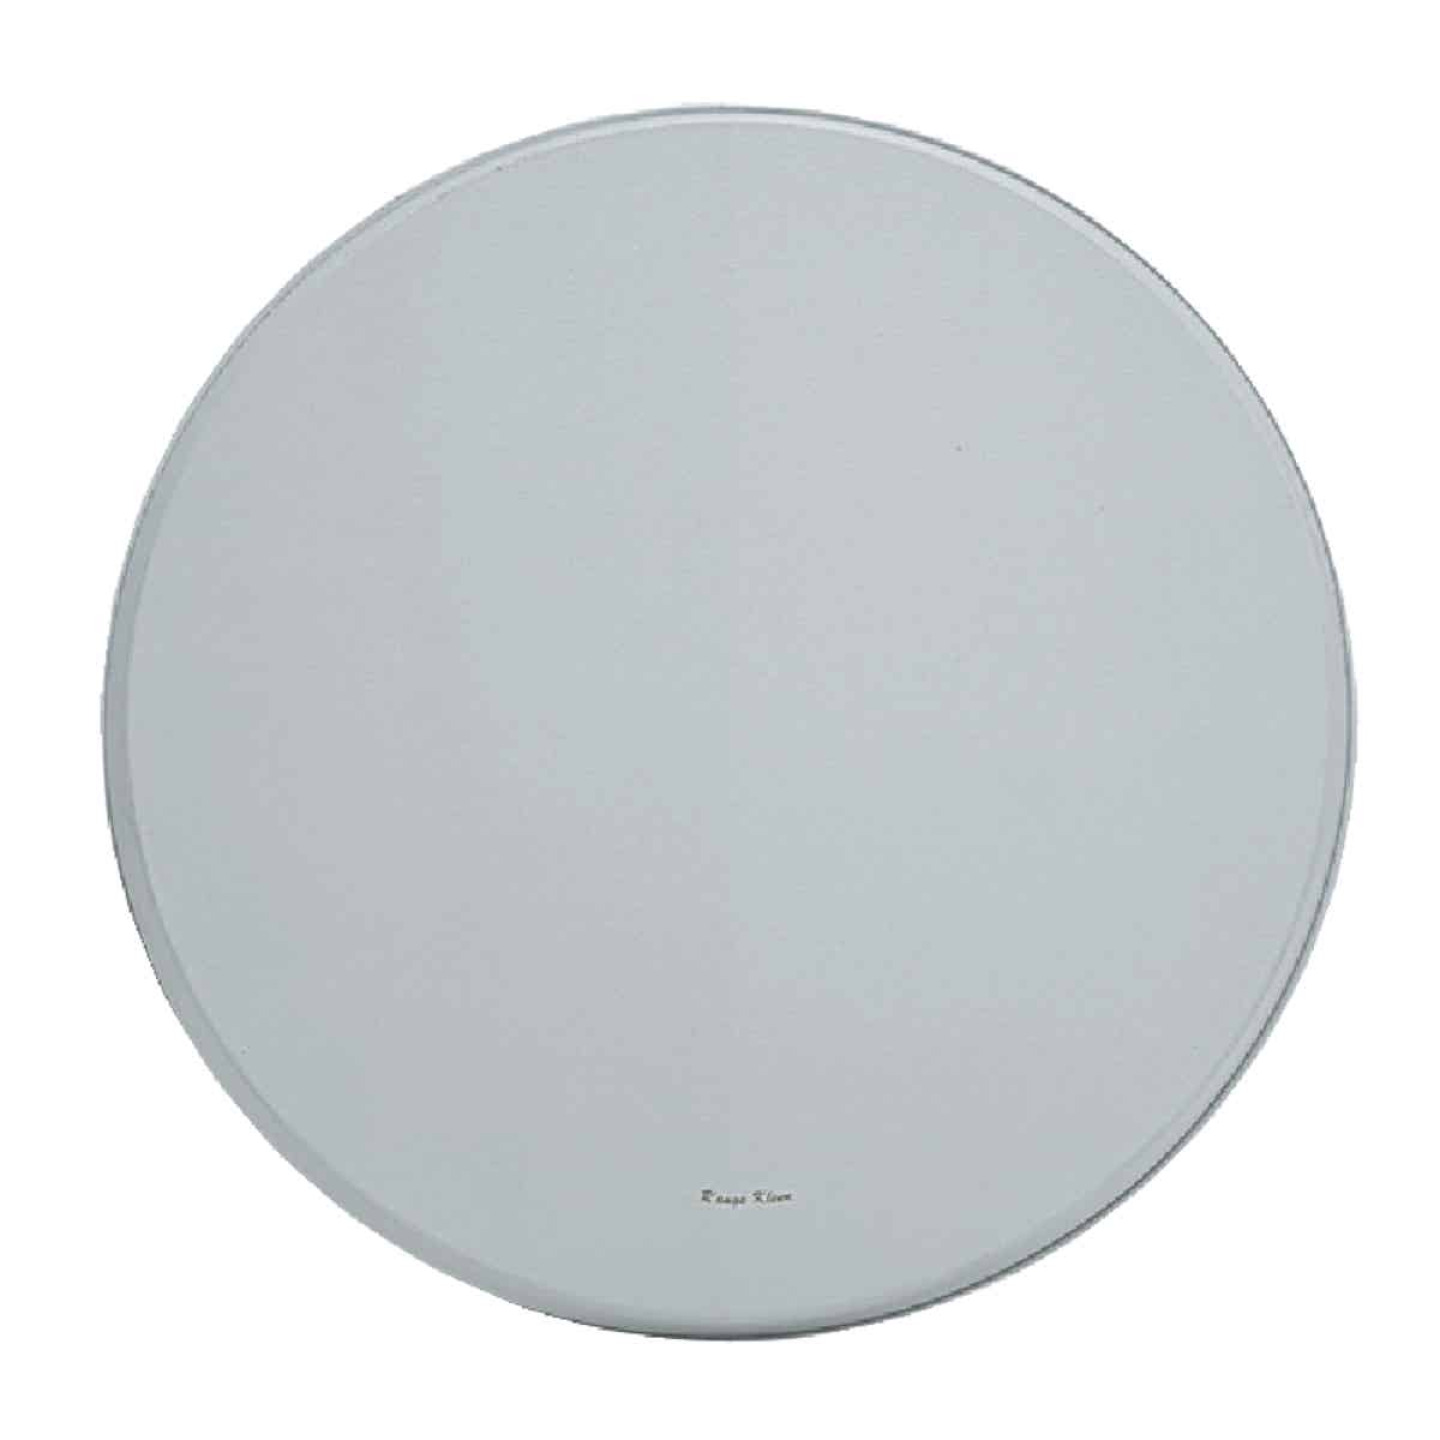 Range Kleen Round Metal White Burner Cover (4-Count) Image 1